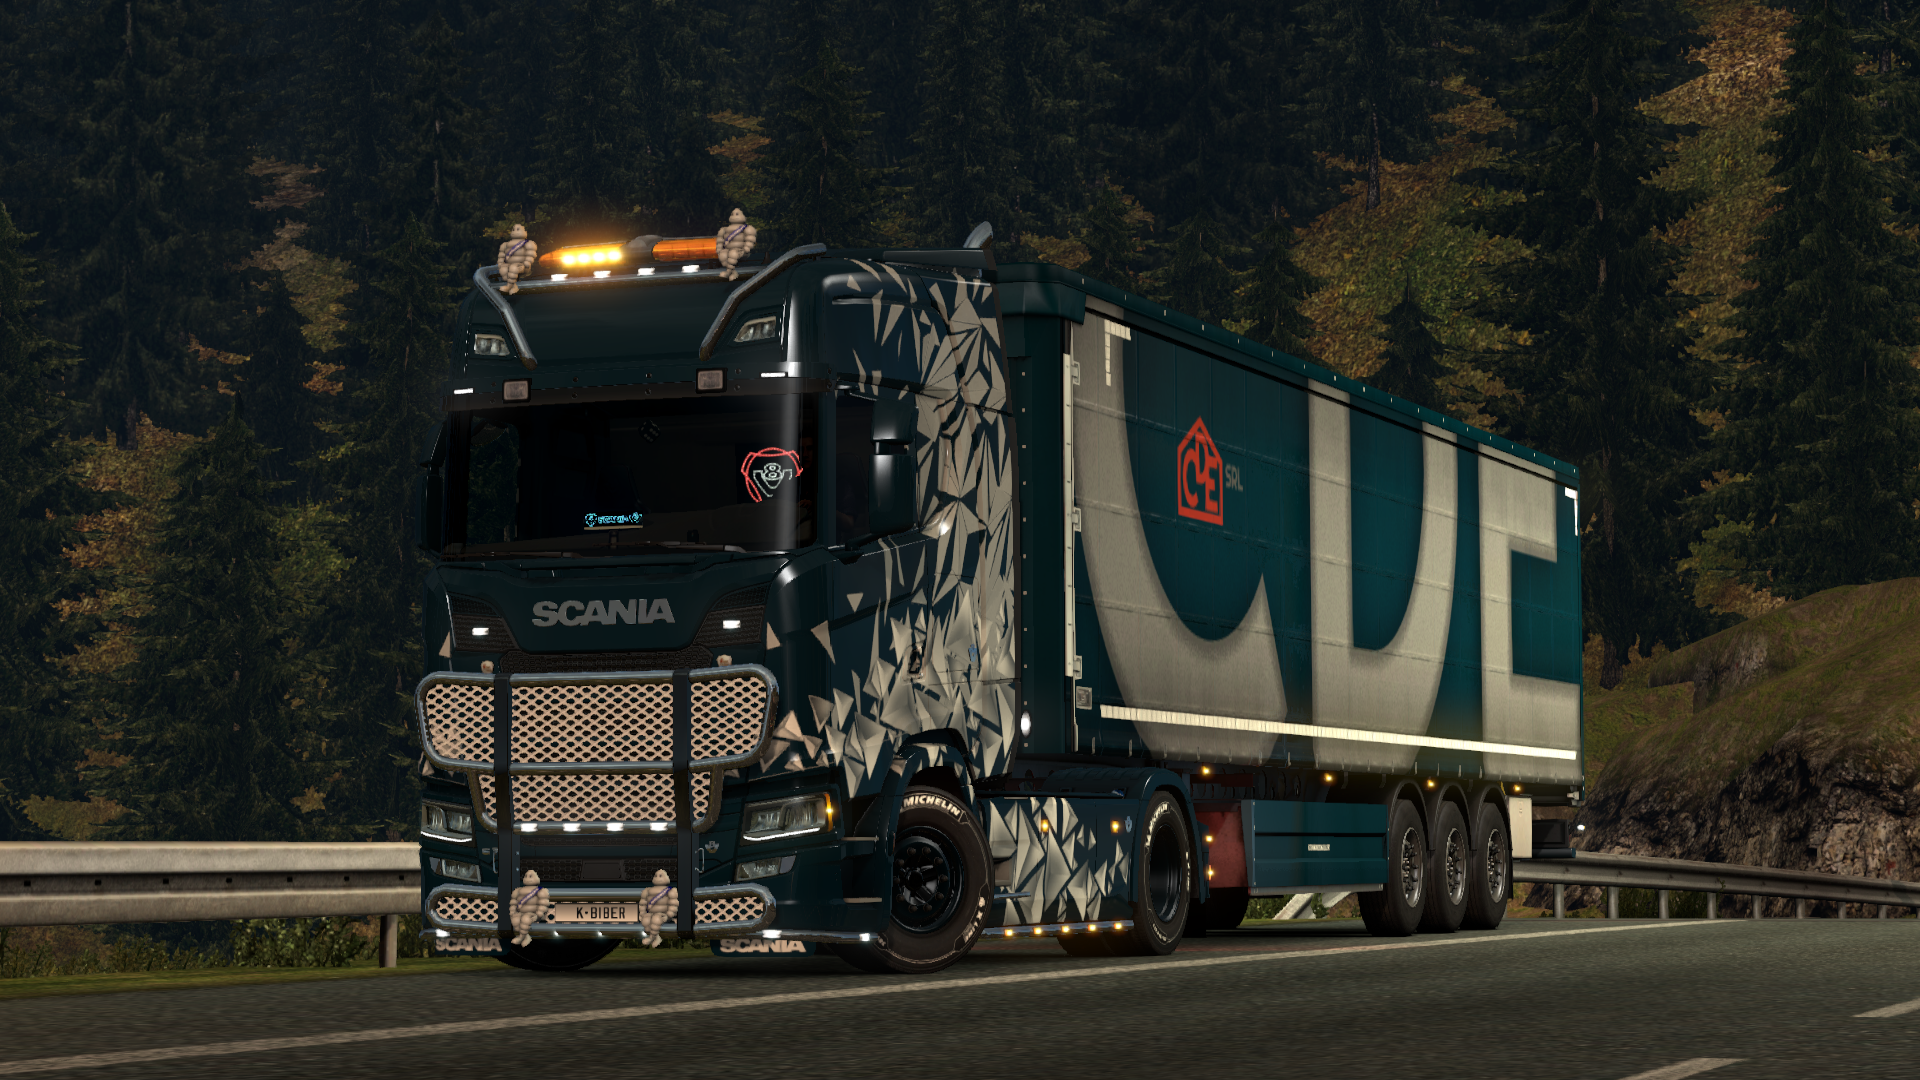 ets2_20180805_174330_00.png